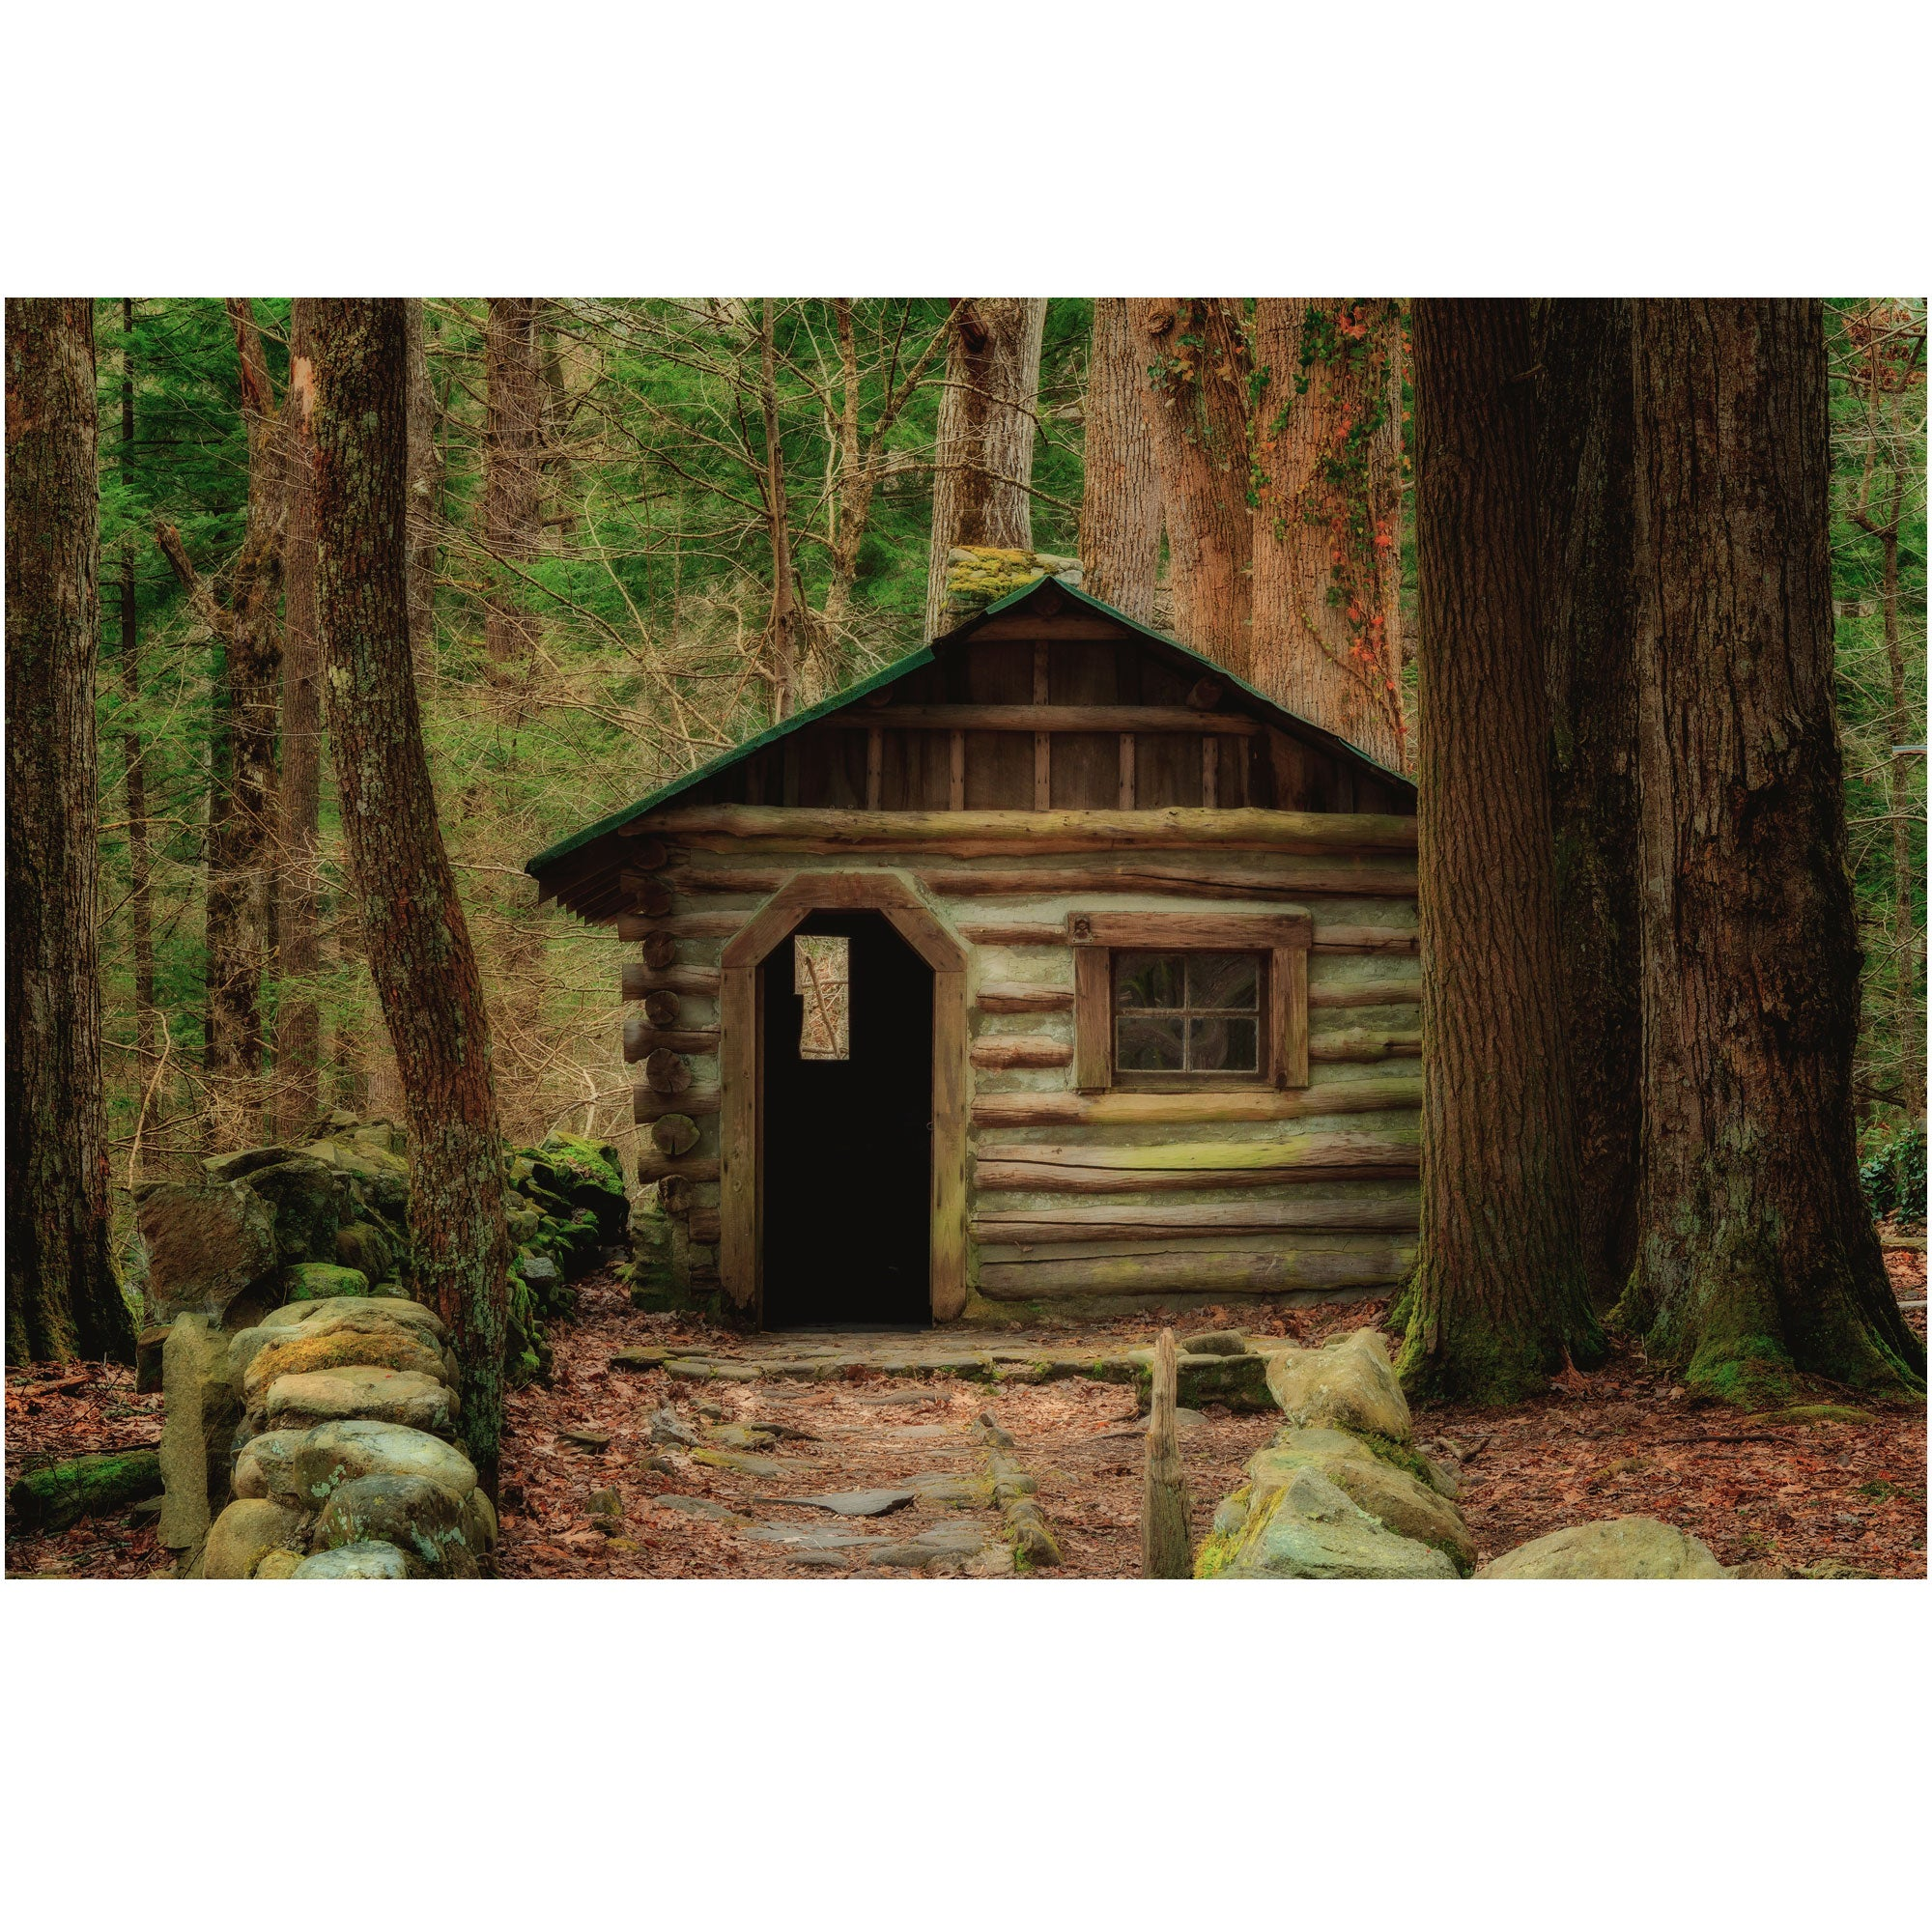 little log cabin at elkmont in the smoky mountains national park